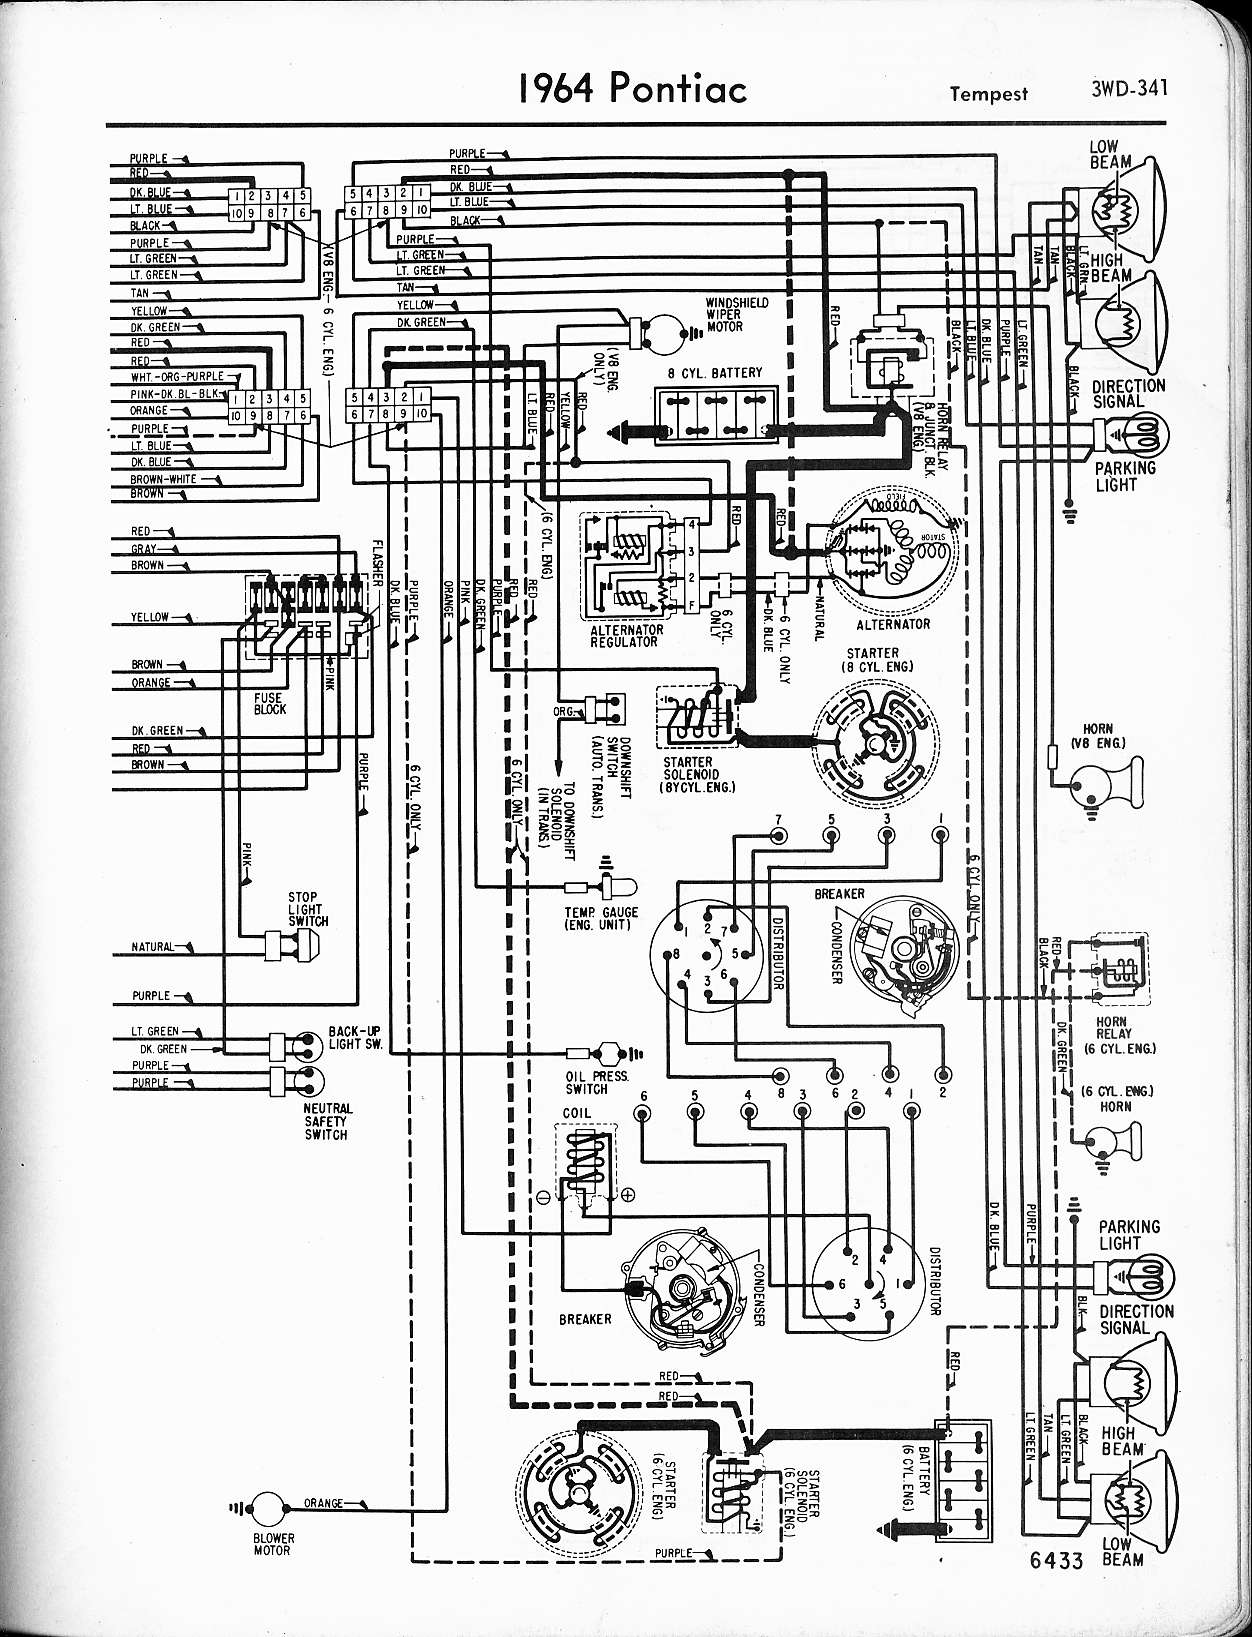 1967 Pontiac Wiring Diagram Change Your Idea With Firebird 1964 Gto Schema Online Rh 11 16 Travelmate Nz De Catalina Camaro